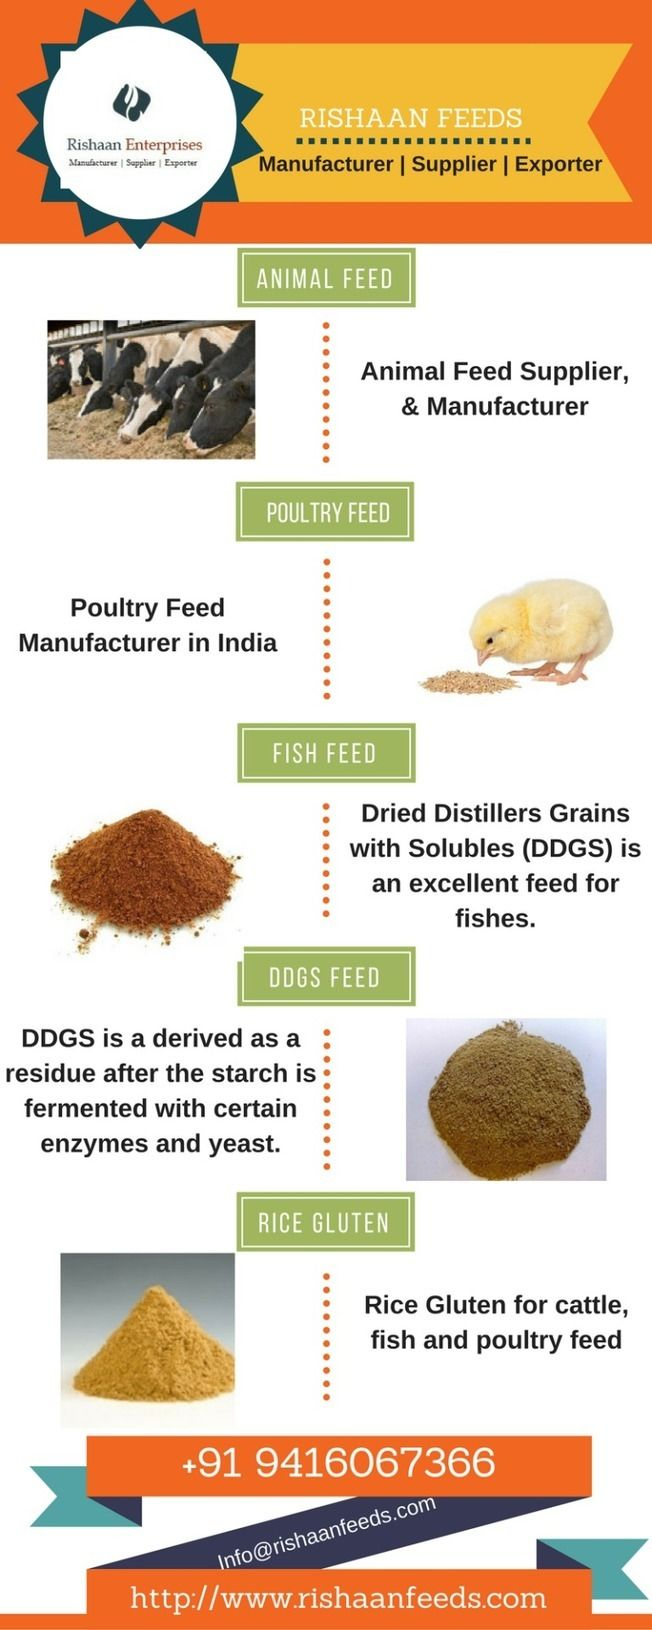 Rishaan Agro Feeds - Producer and suppliers of DDGS Feed